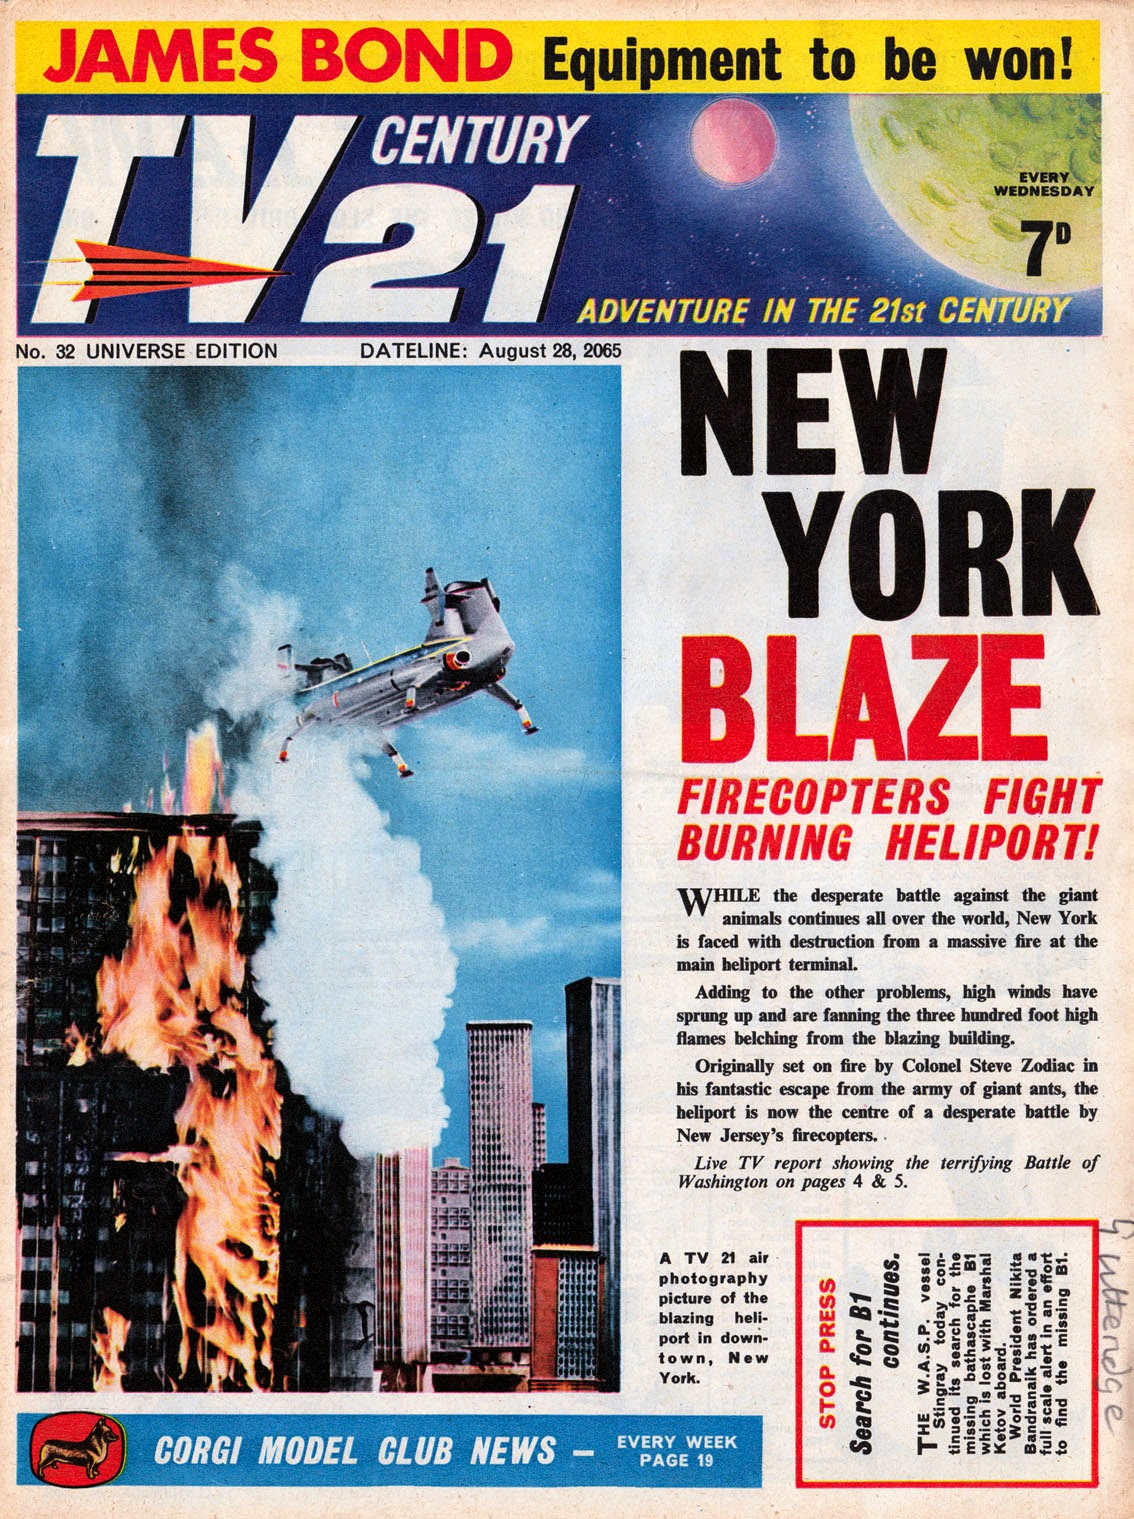 This Is The Issue Of TV21 That Was Published Exactly 49 Years Ago Today On Wednesday 25th August 1965 I Can Tell You With Certainty Weather